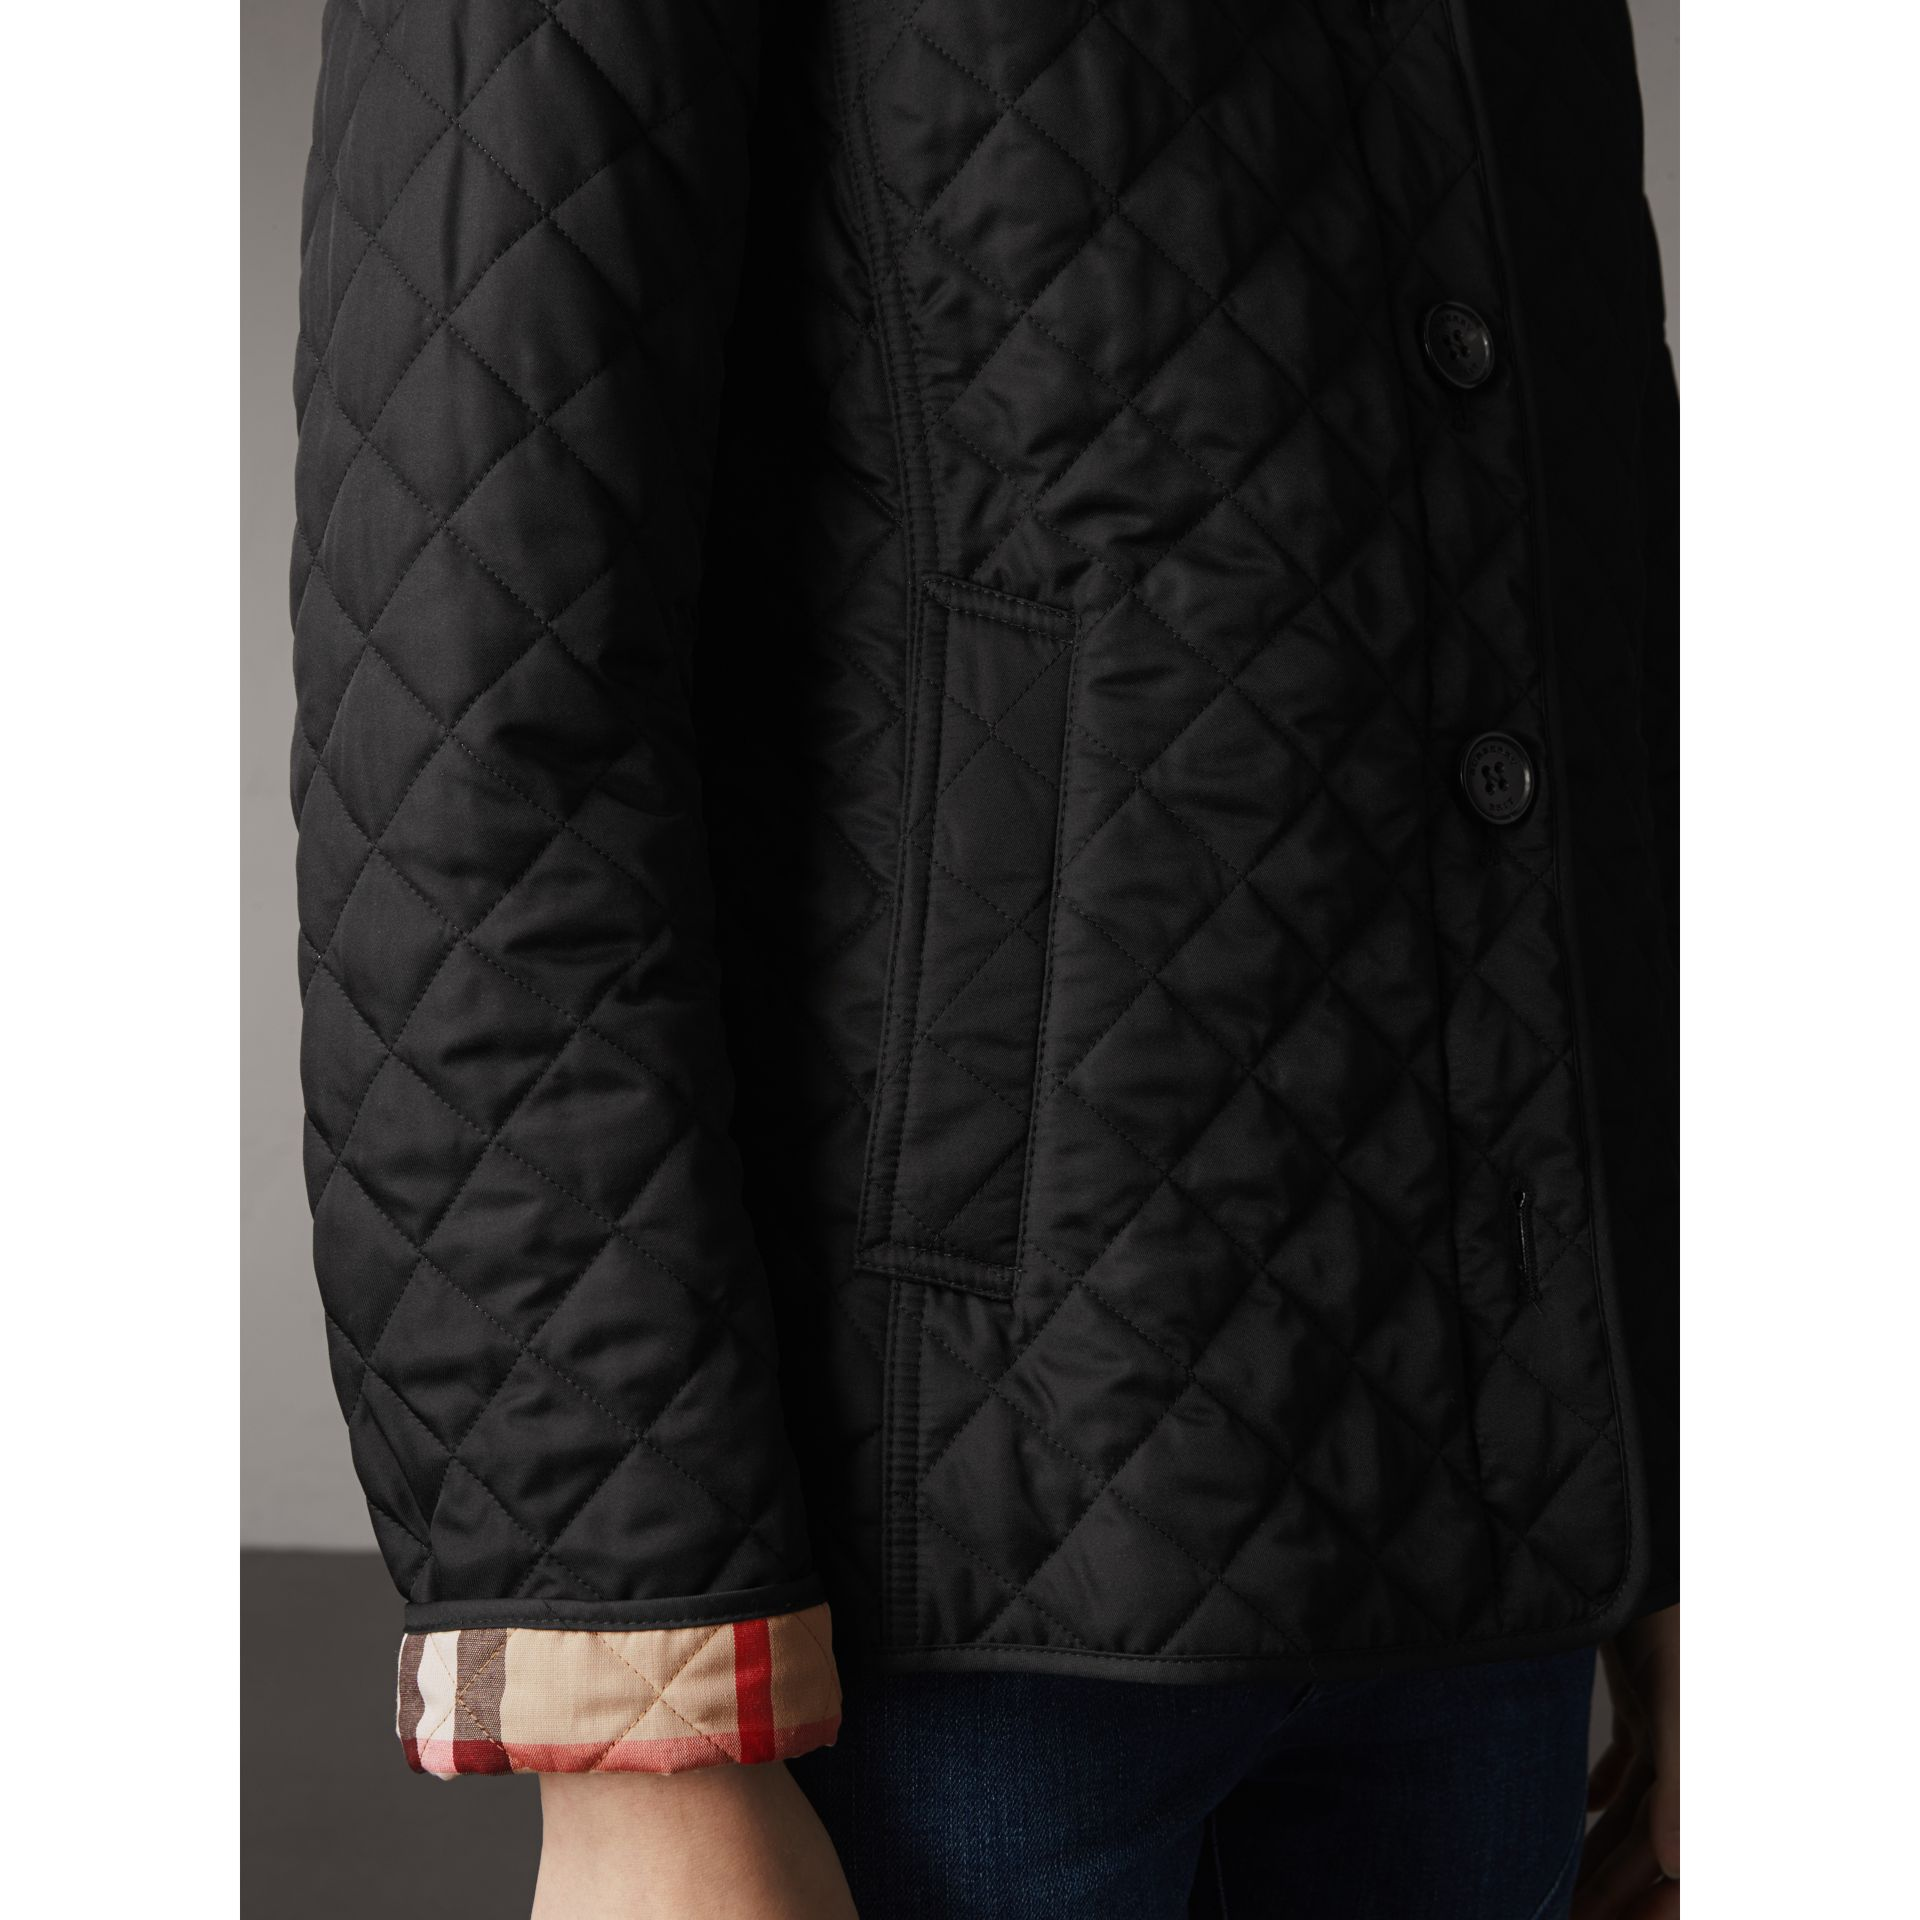 Diamond Quilted Jacket in Black - Women | Burberry Australia - gallery image 4